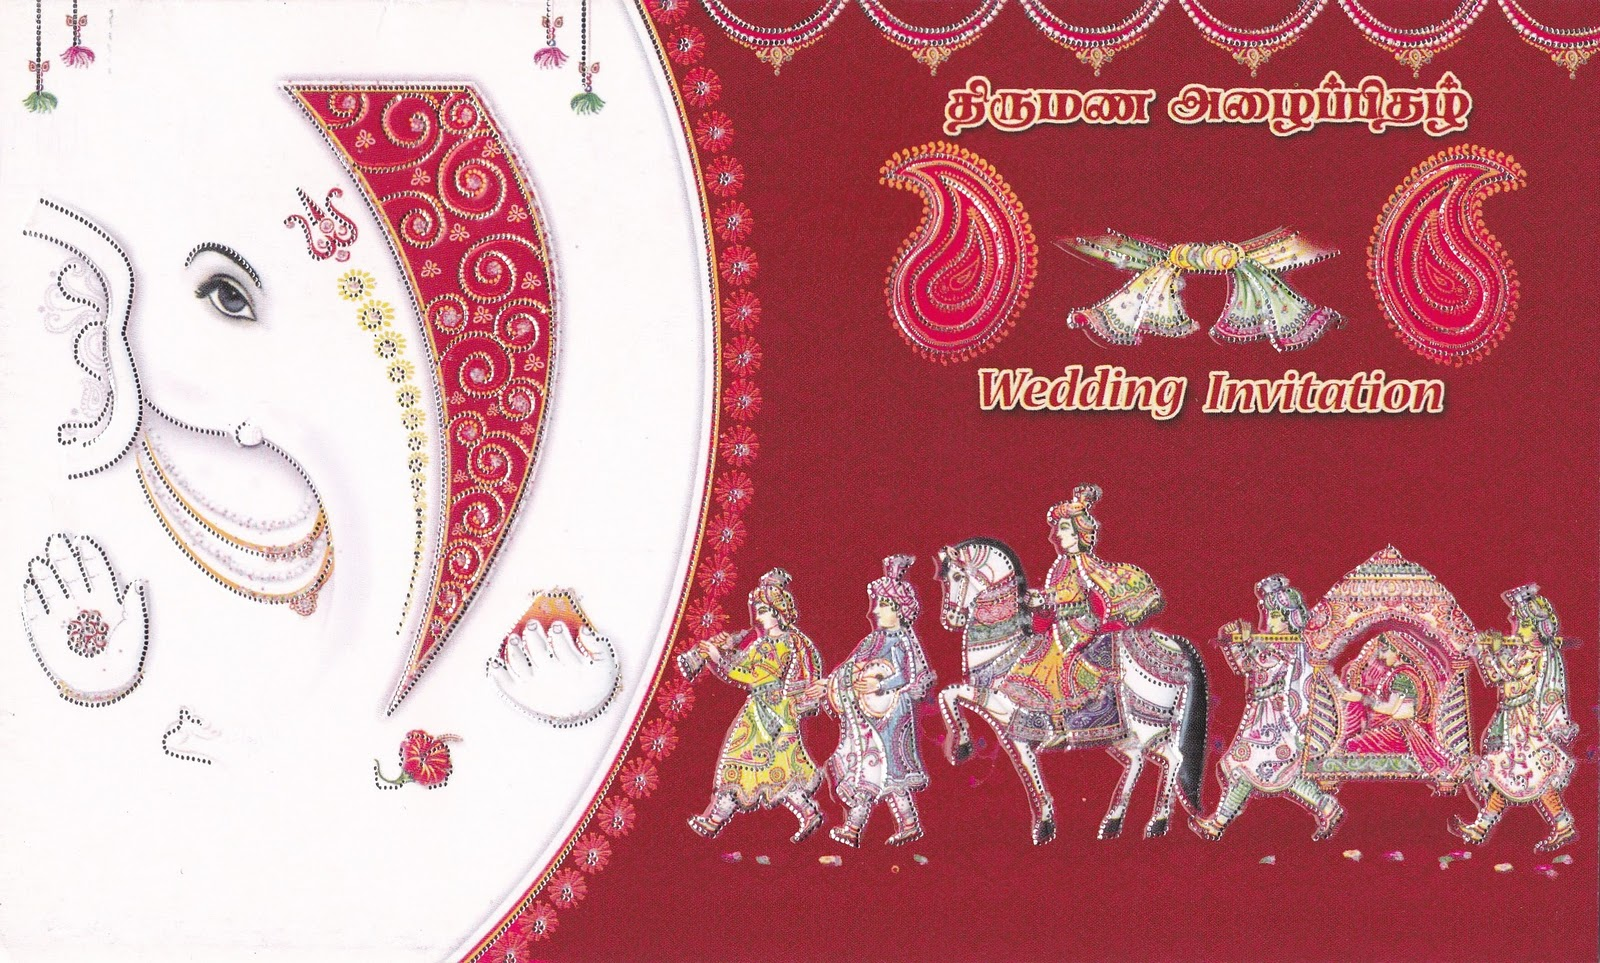 hindu wedding invitation cover page wording indian wedding invitations Hindu Marriage Invitation Cards Design Business Card